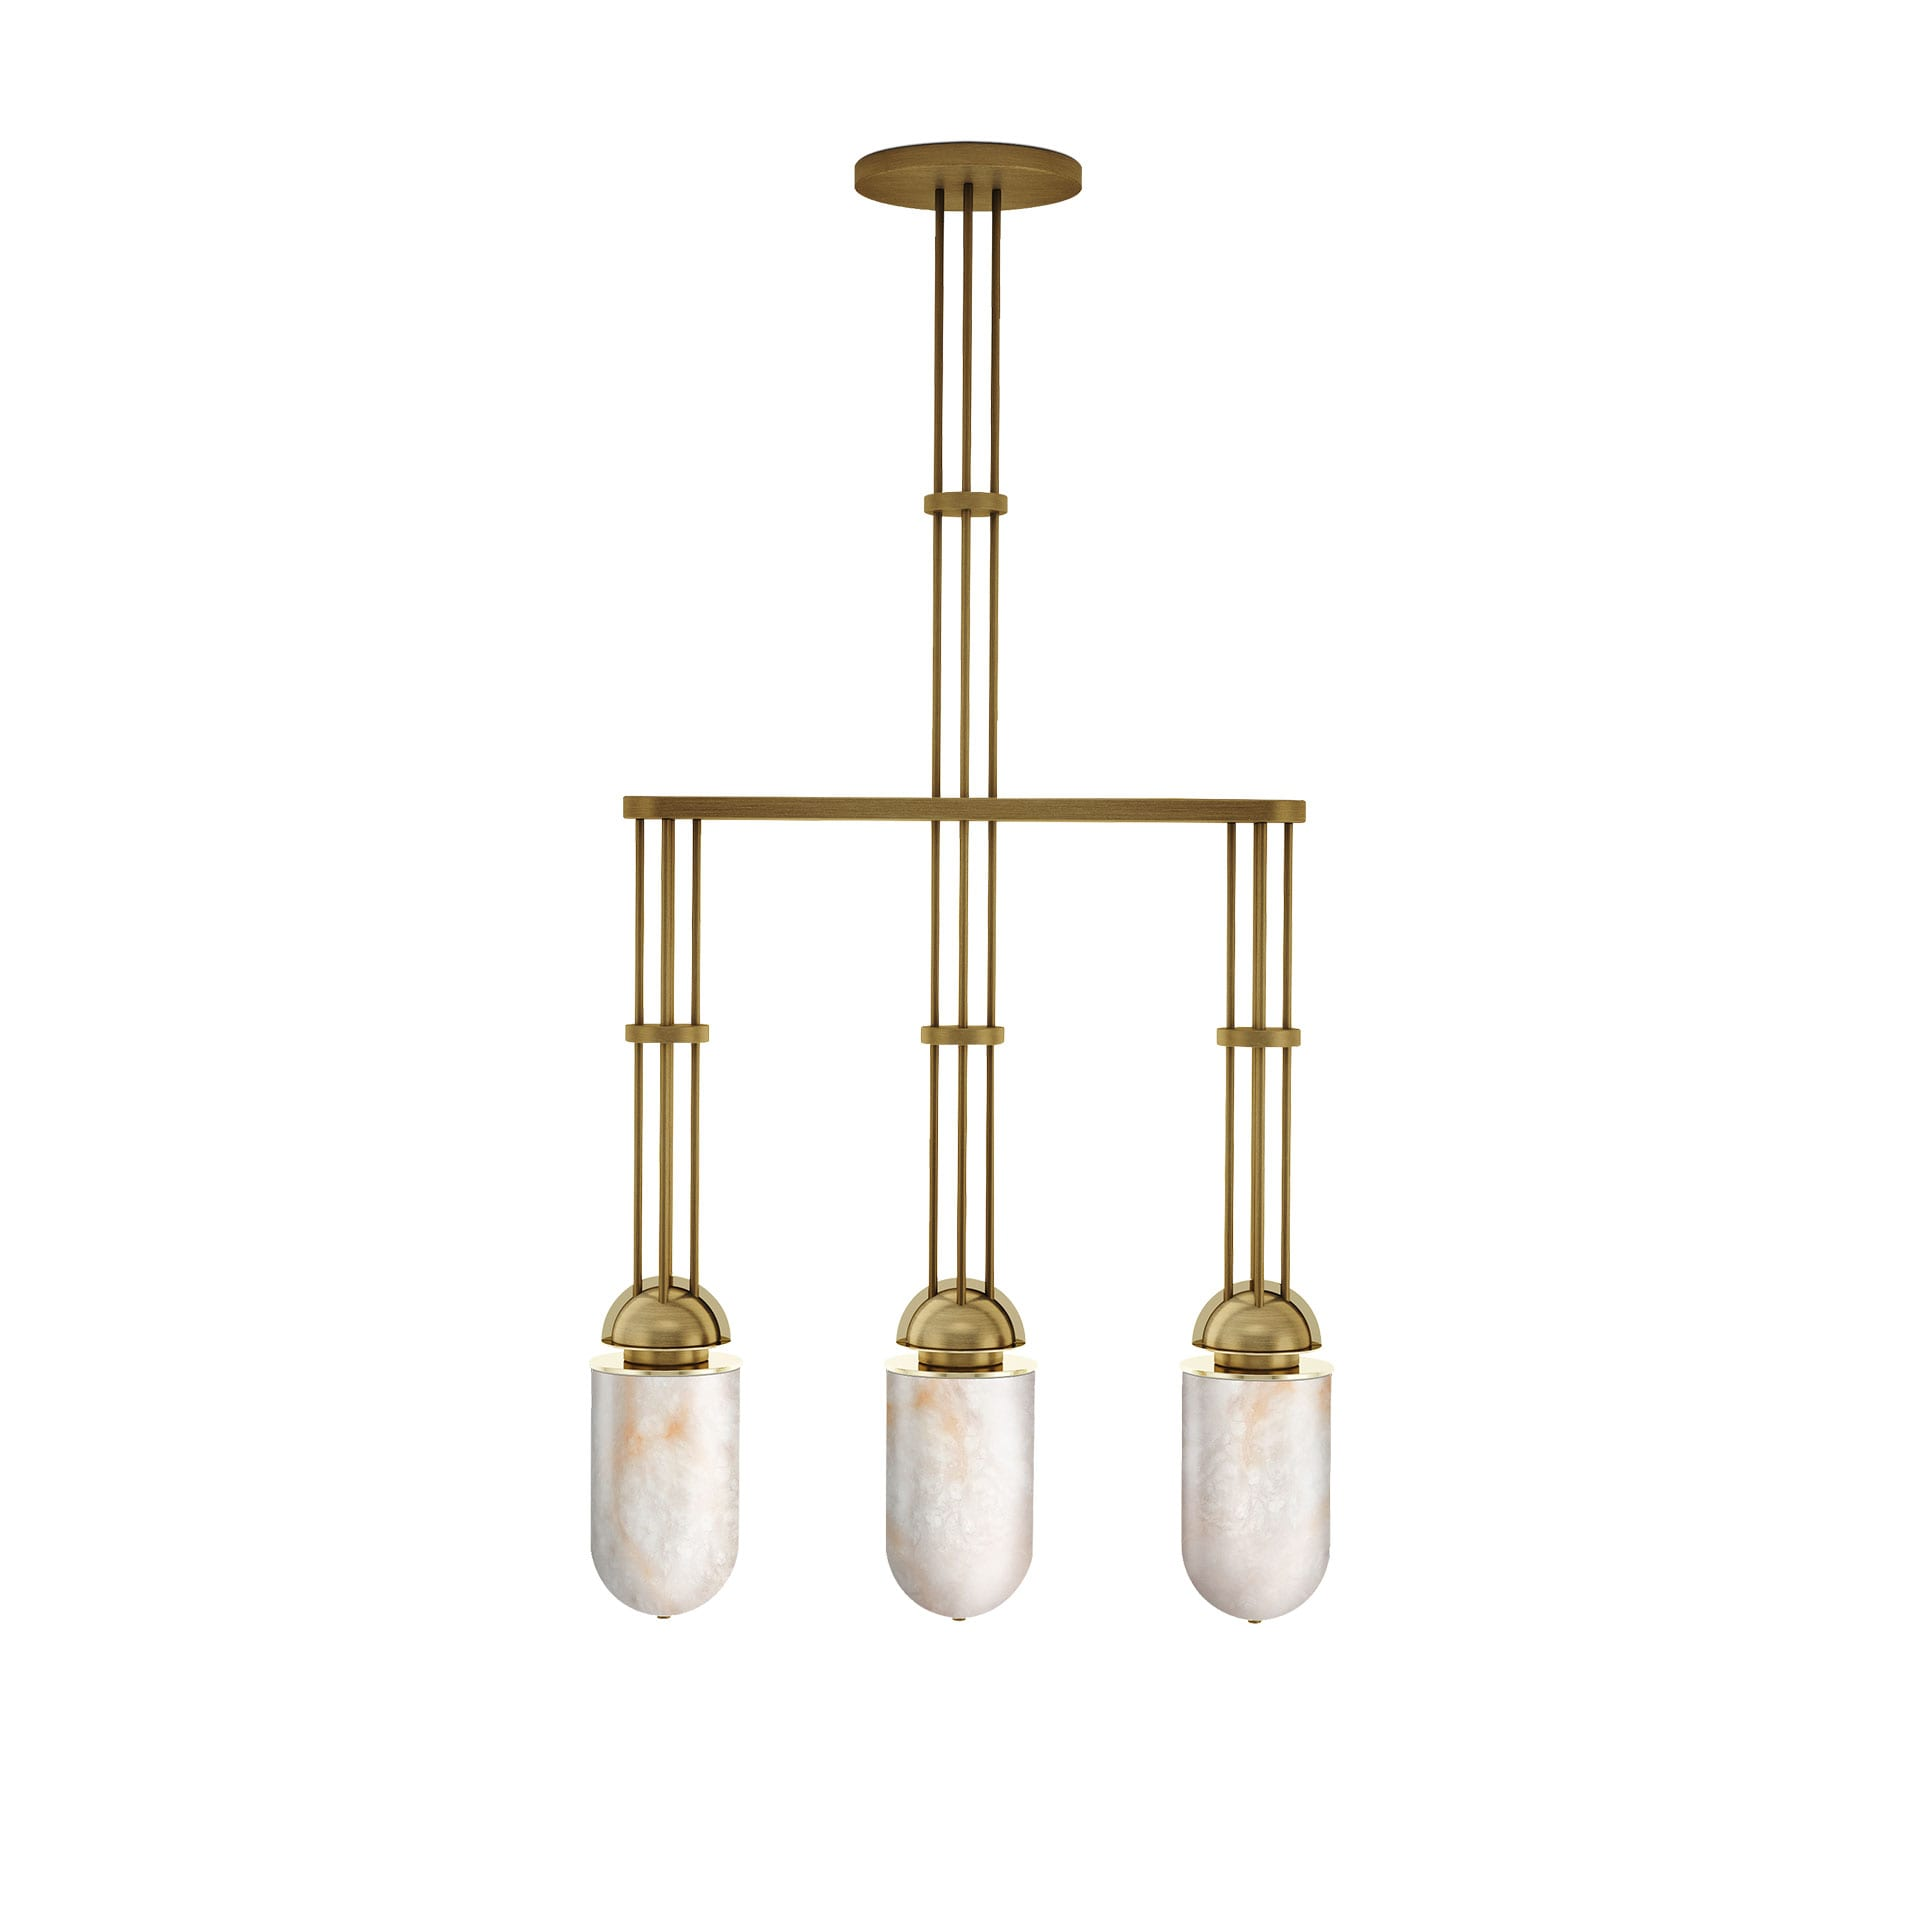 Russell suspension lamp